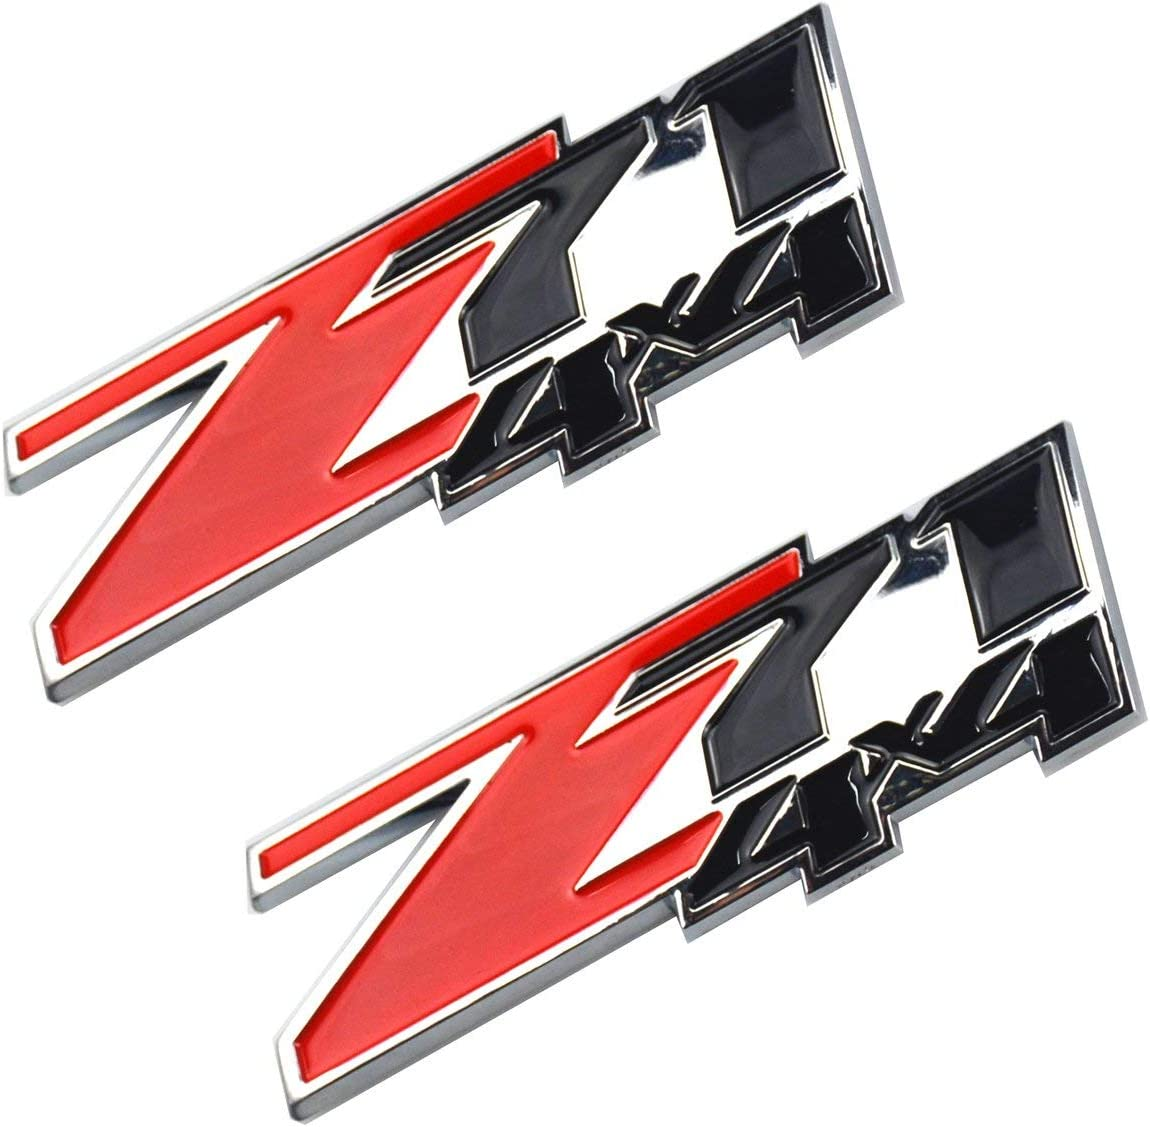 3D ABS Decal Emblems for Chevy GMC Silverado Z71 4x4 Emblems Badges Red Black